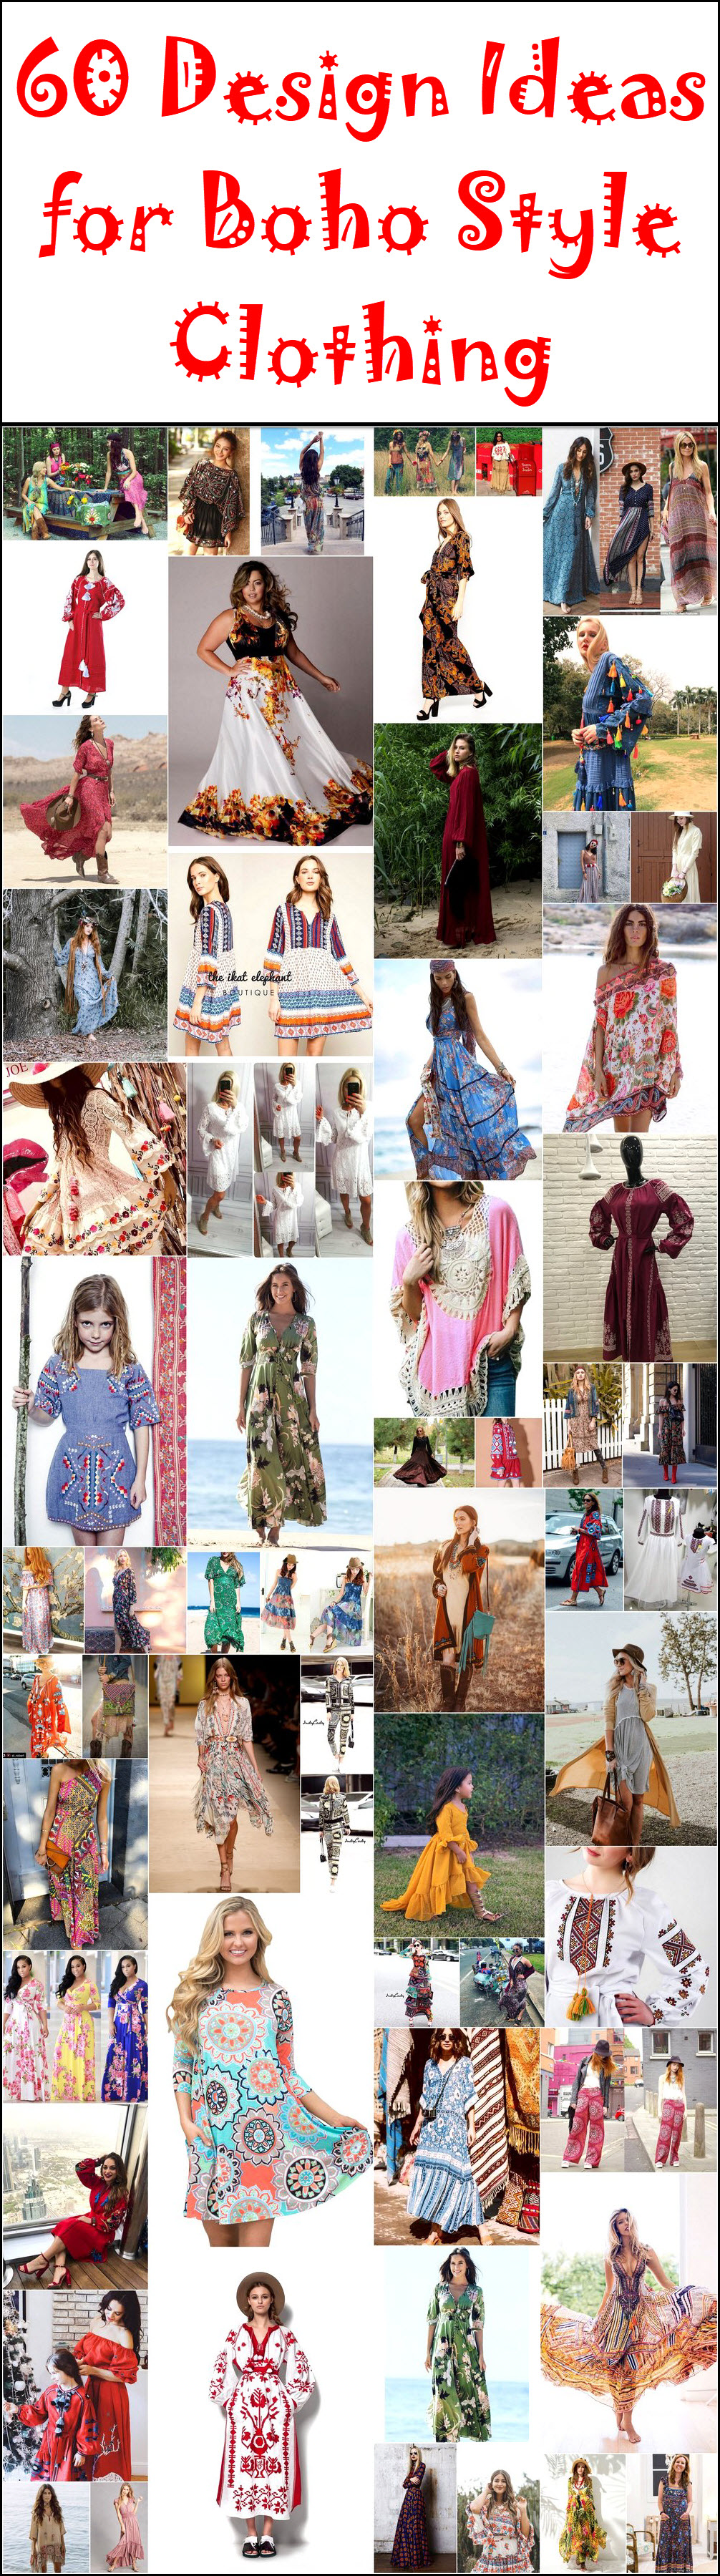 60 Design Ideas for Boho Style Clothing